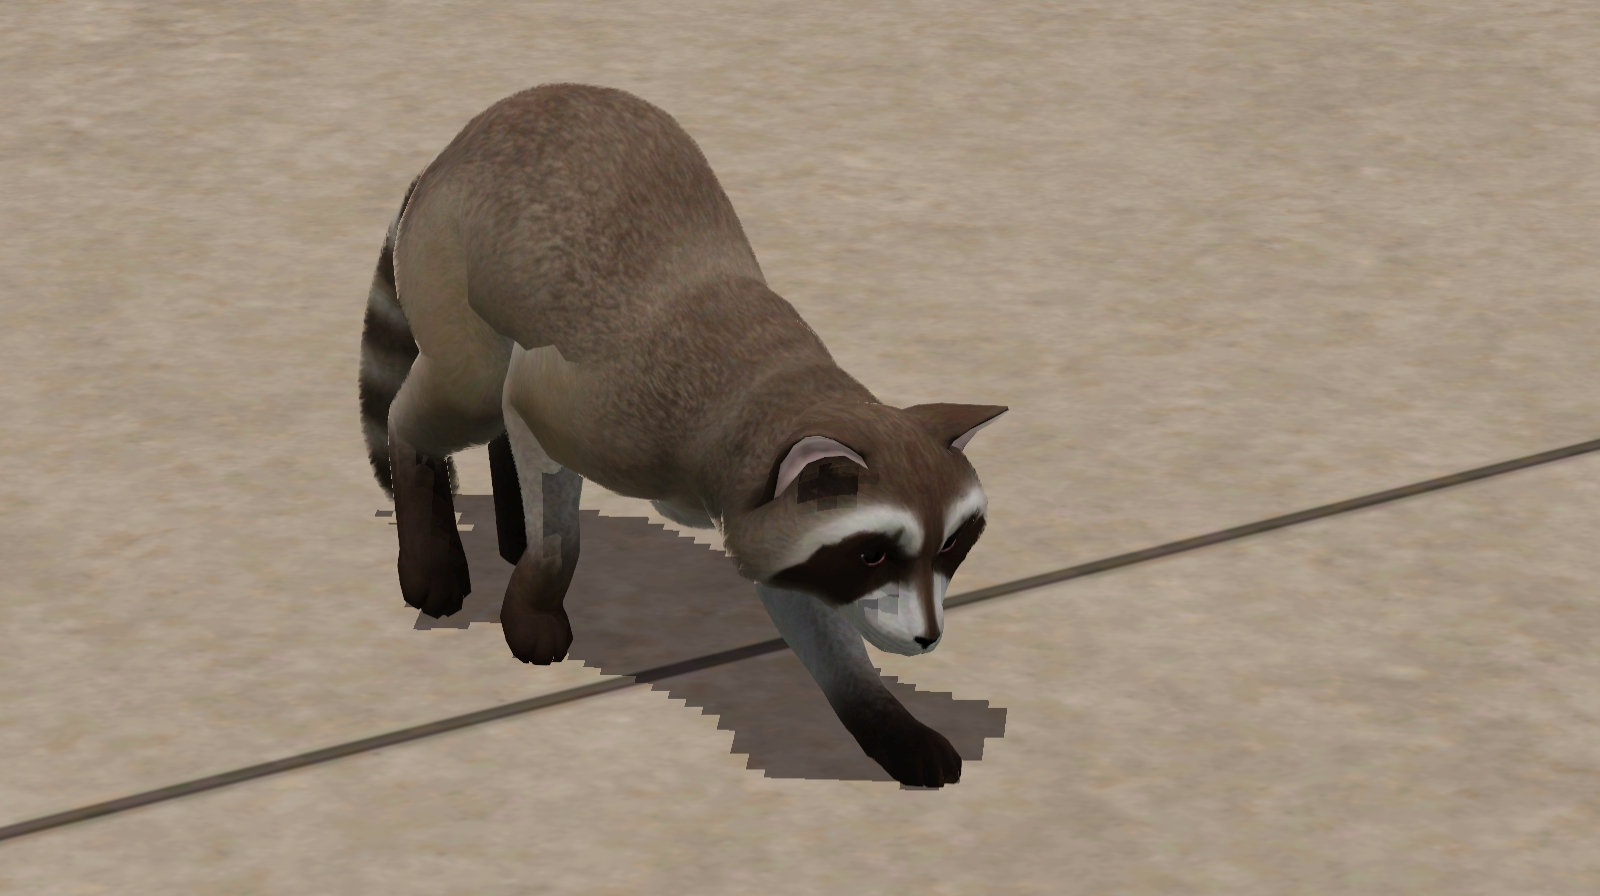 Raccoon | The Sims Wiki | FANDOM powered by Wikia